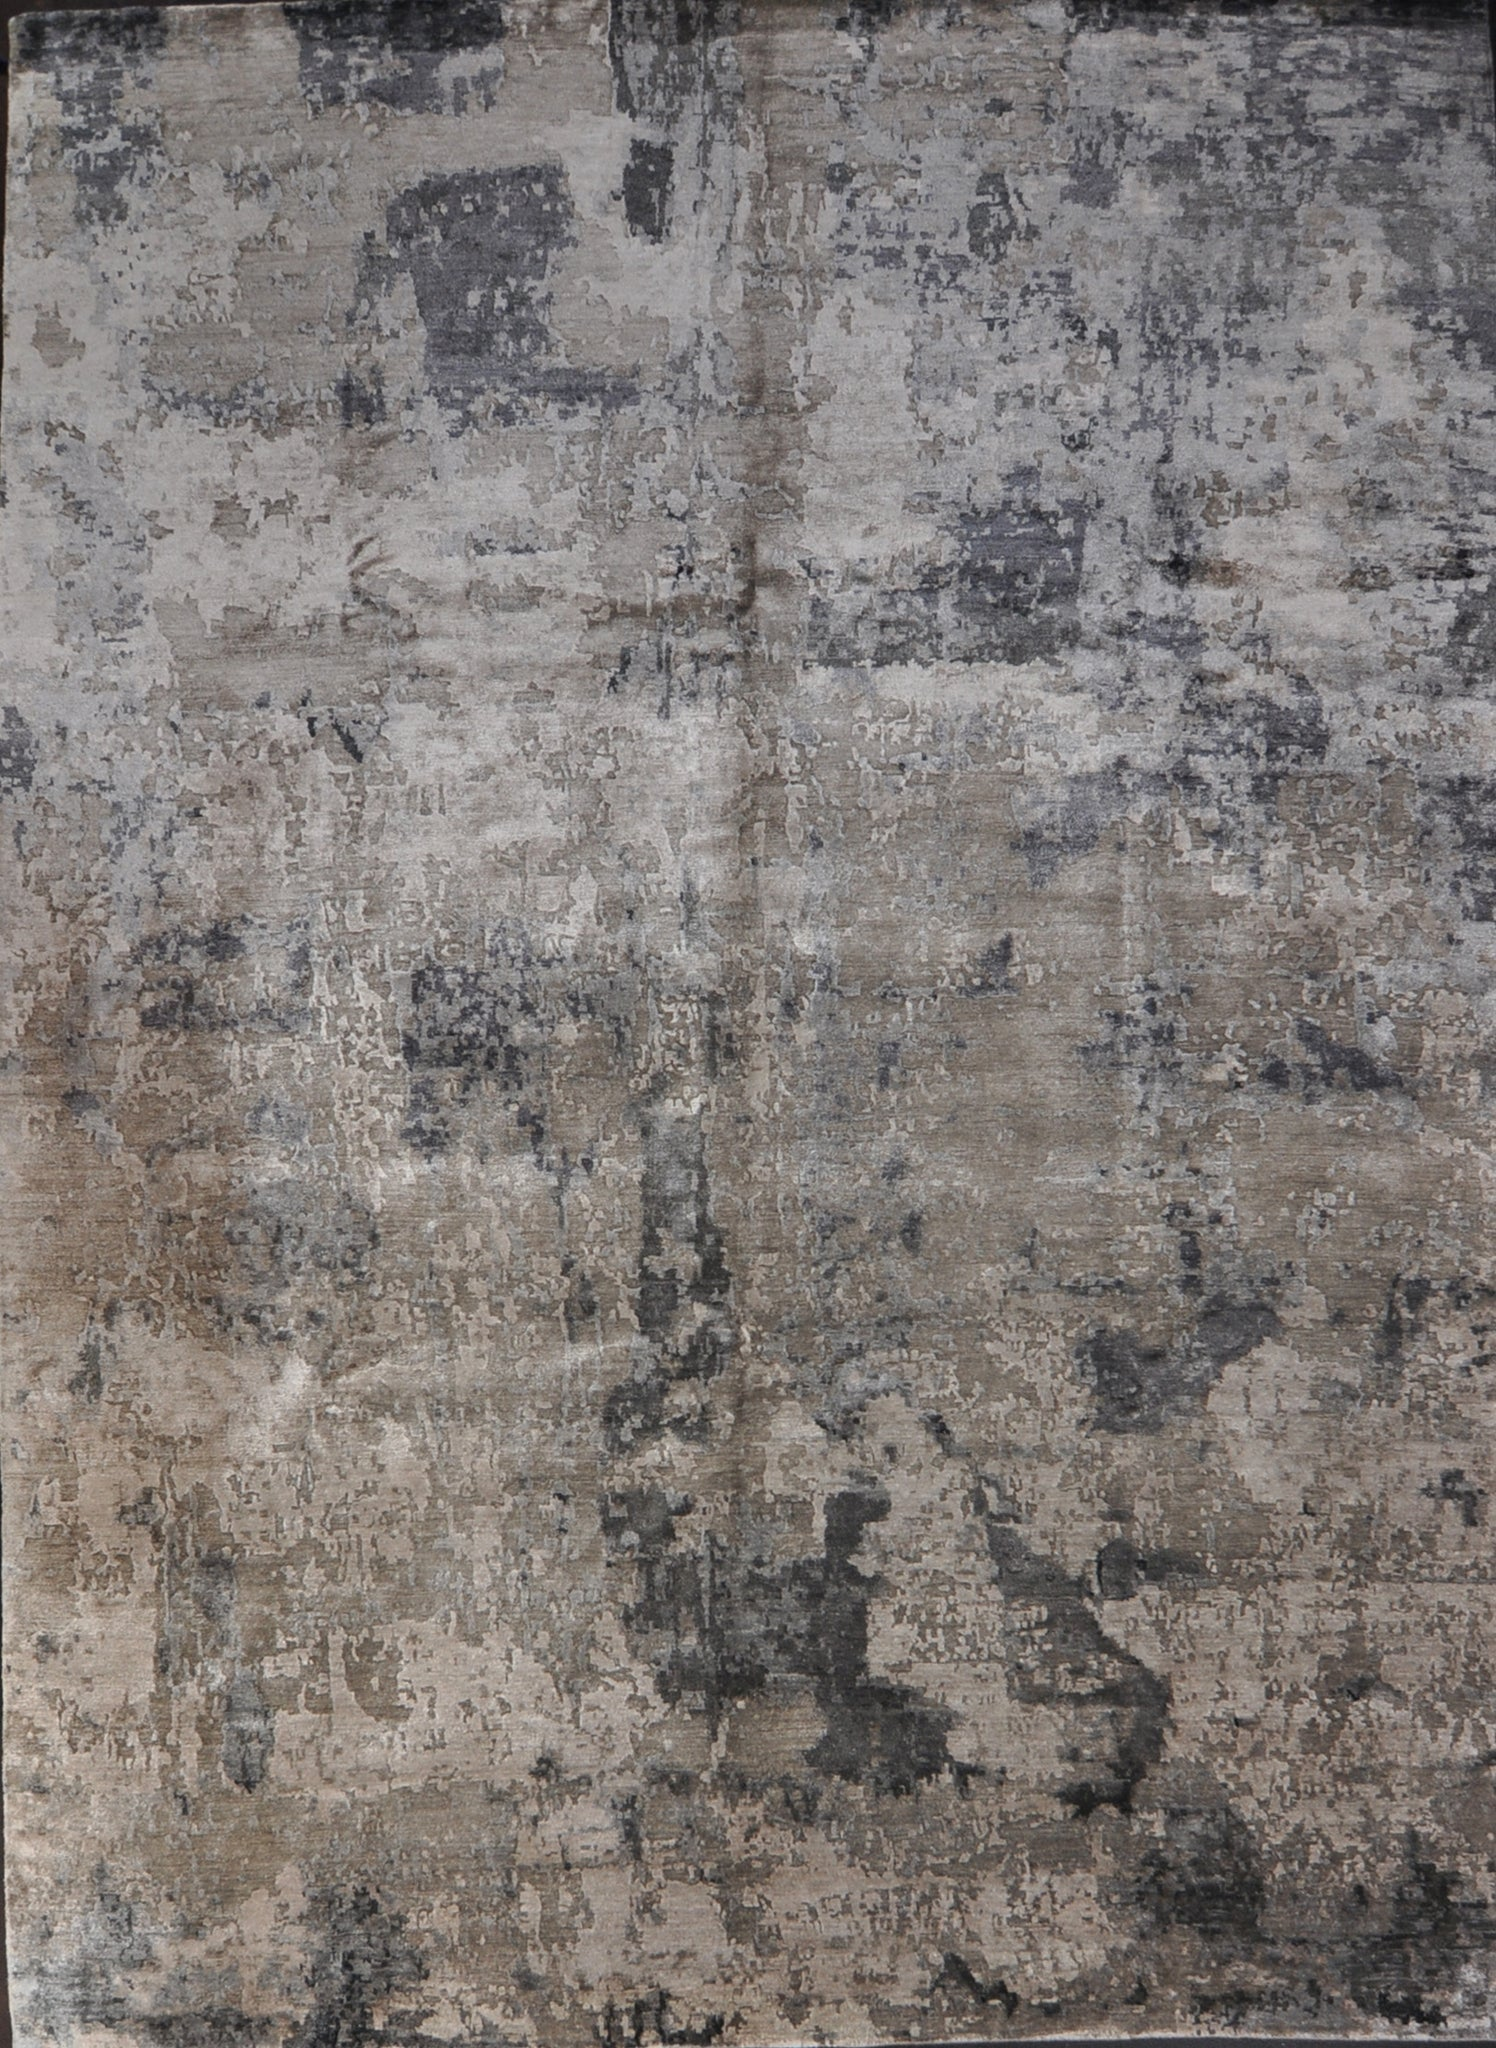 Rug Id: 1340 Indo Tebatan 9.9x13.9 all silk